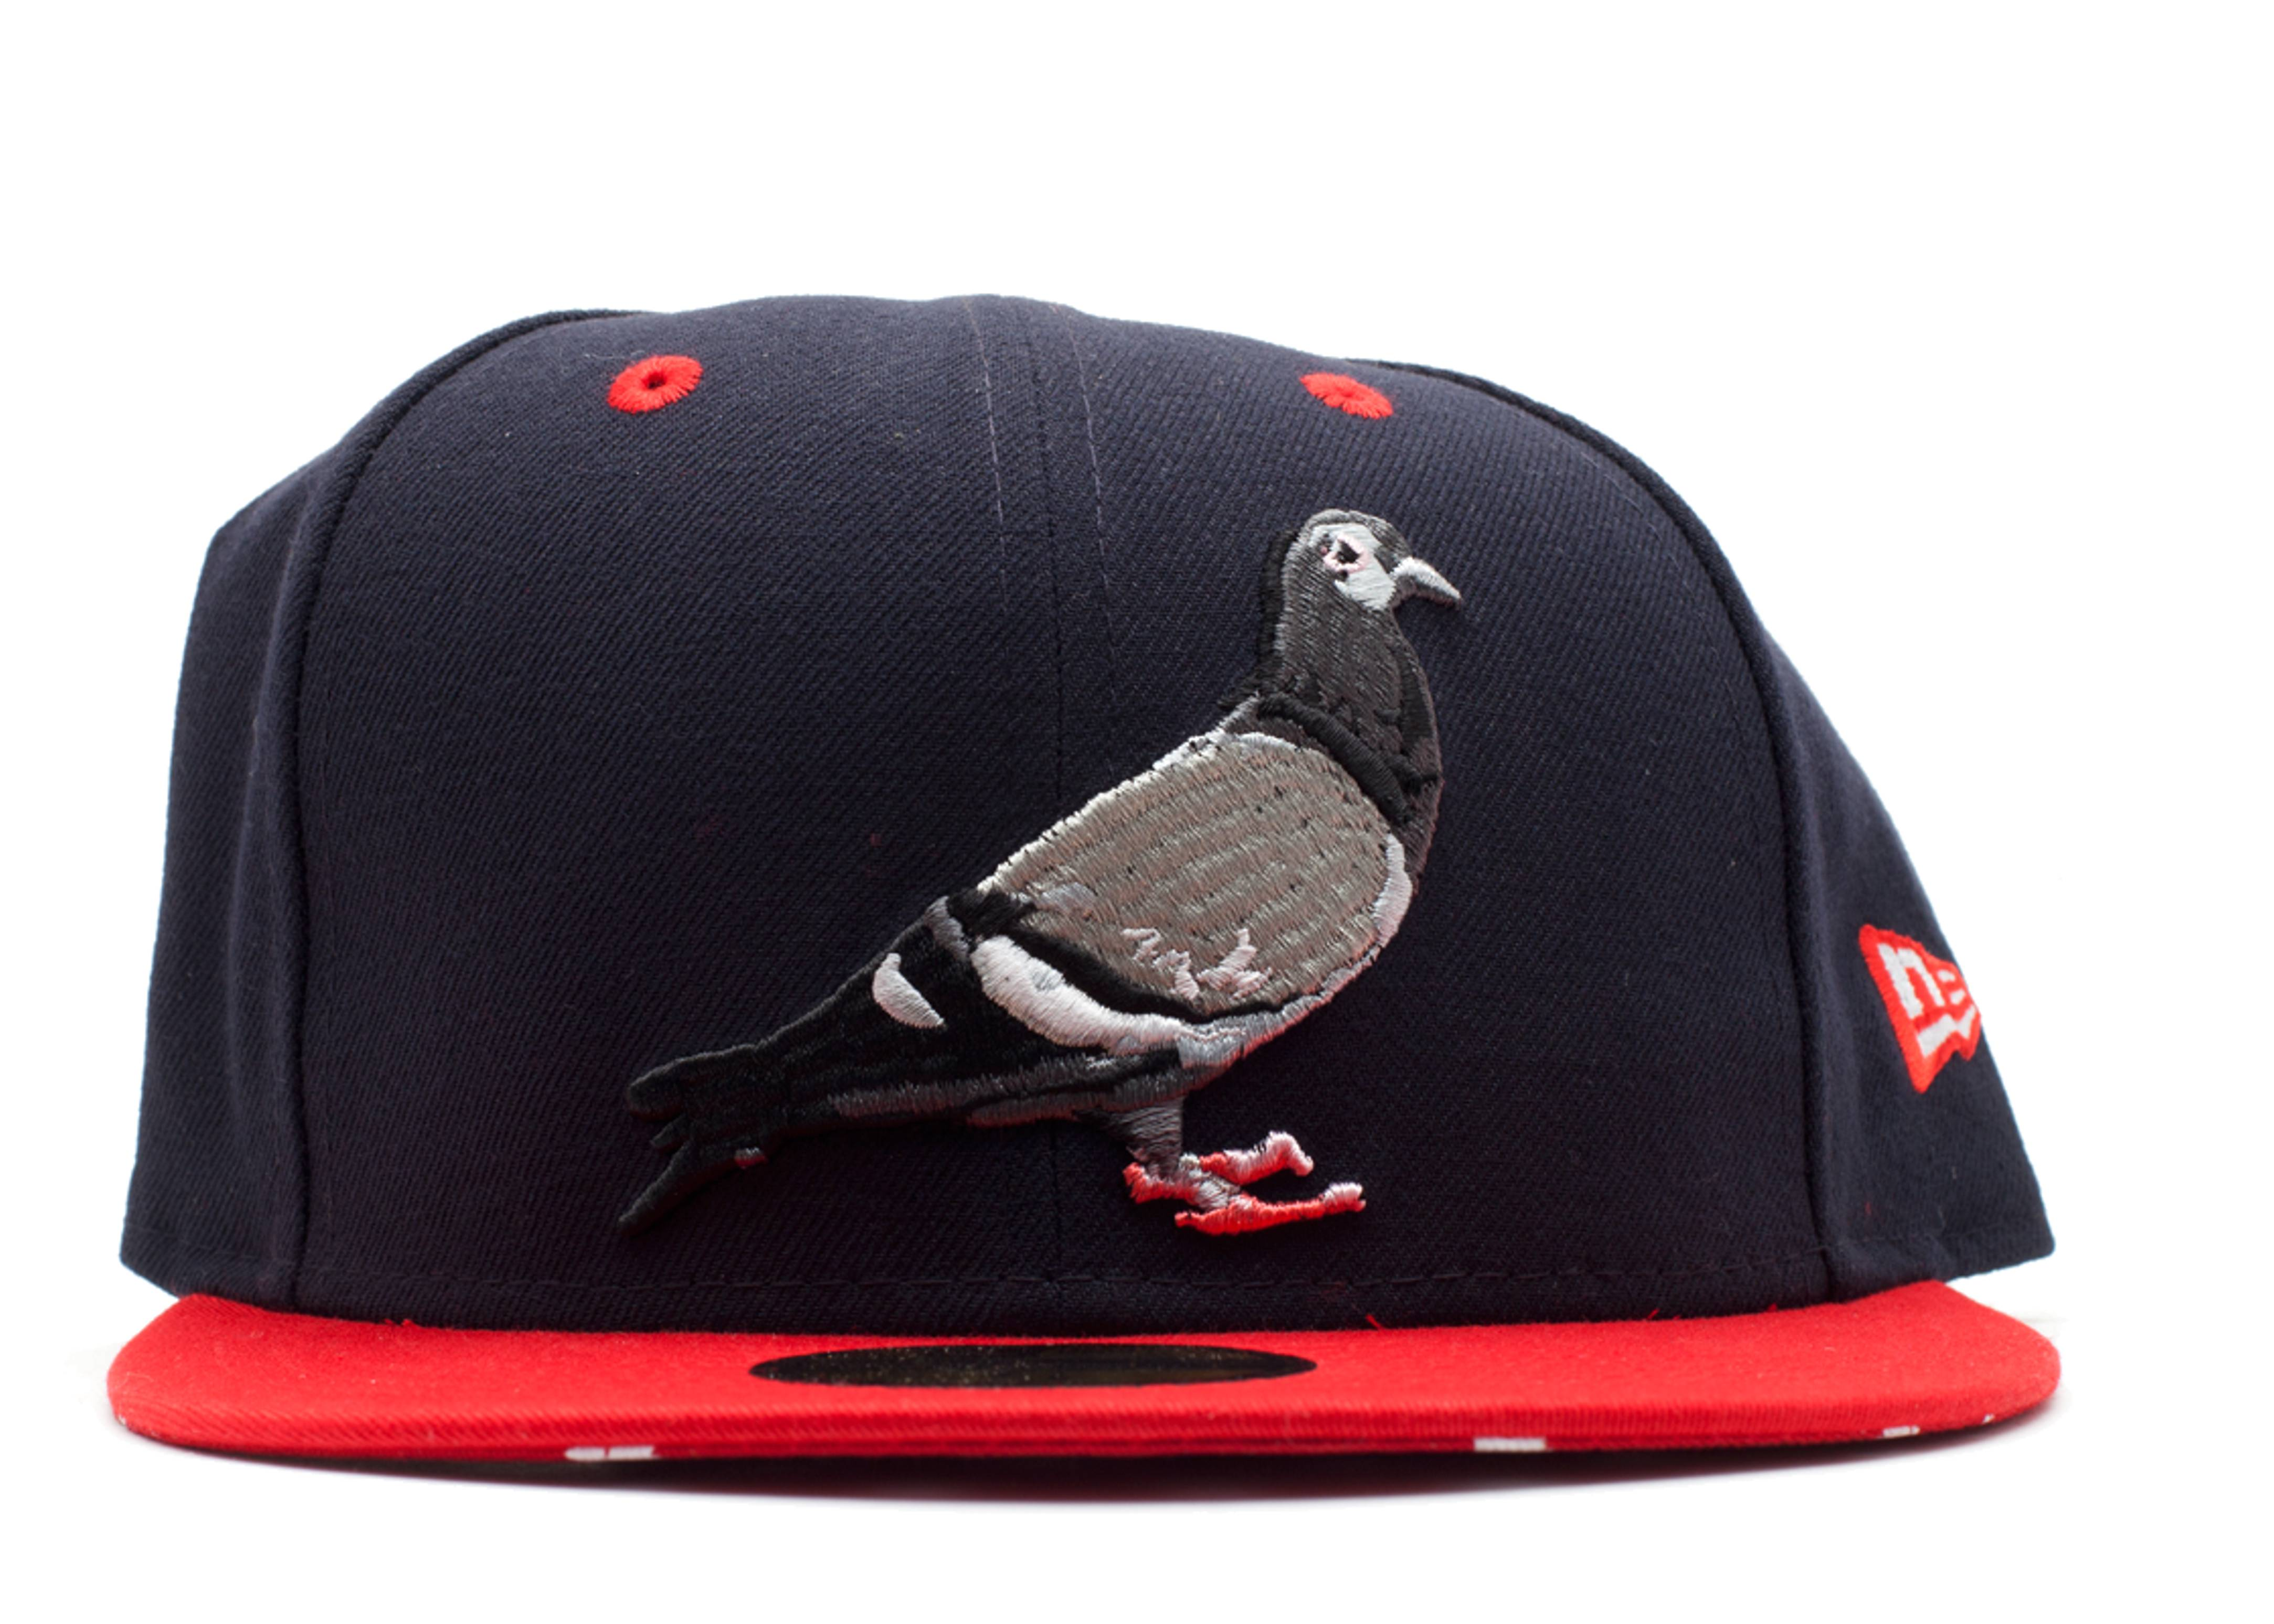 Staple Pigeon Fitted - New Era - navy1210x1580 - navy red  27b76d68d69